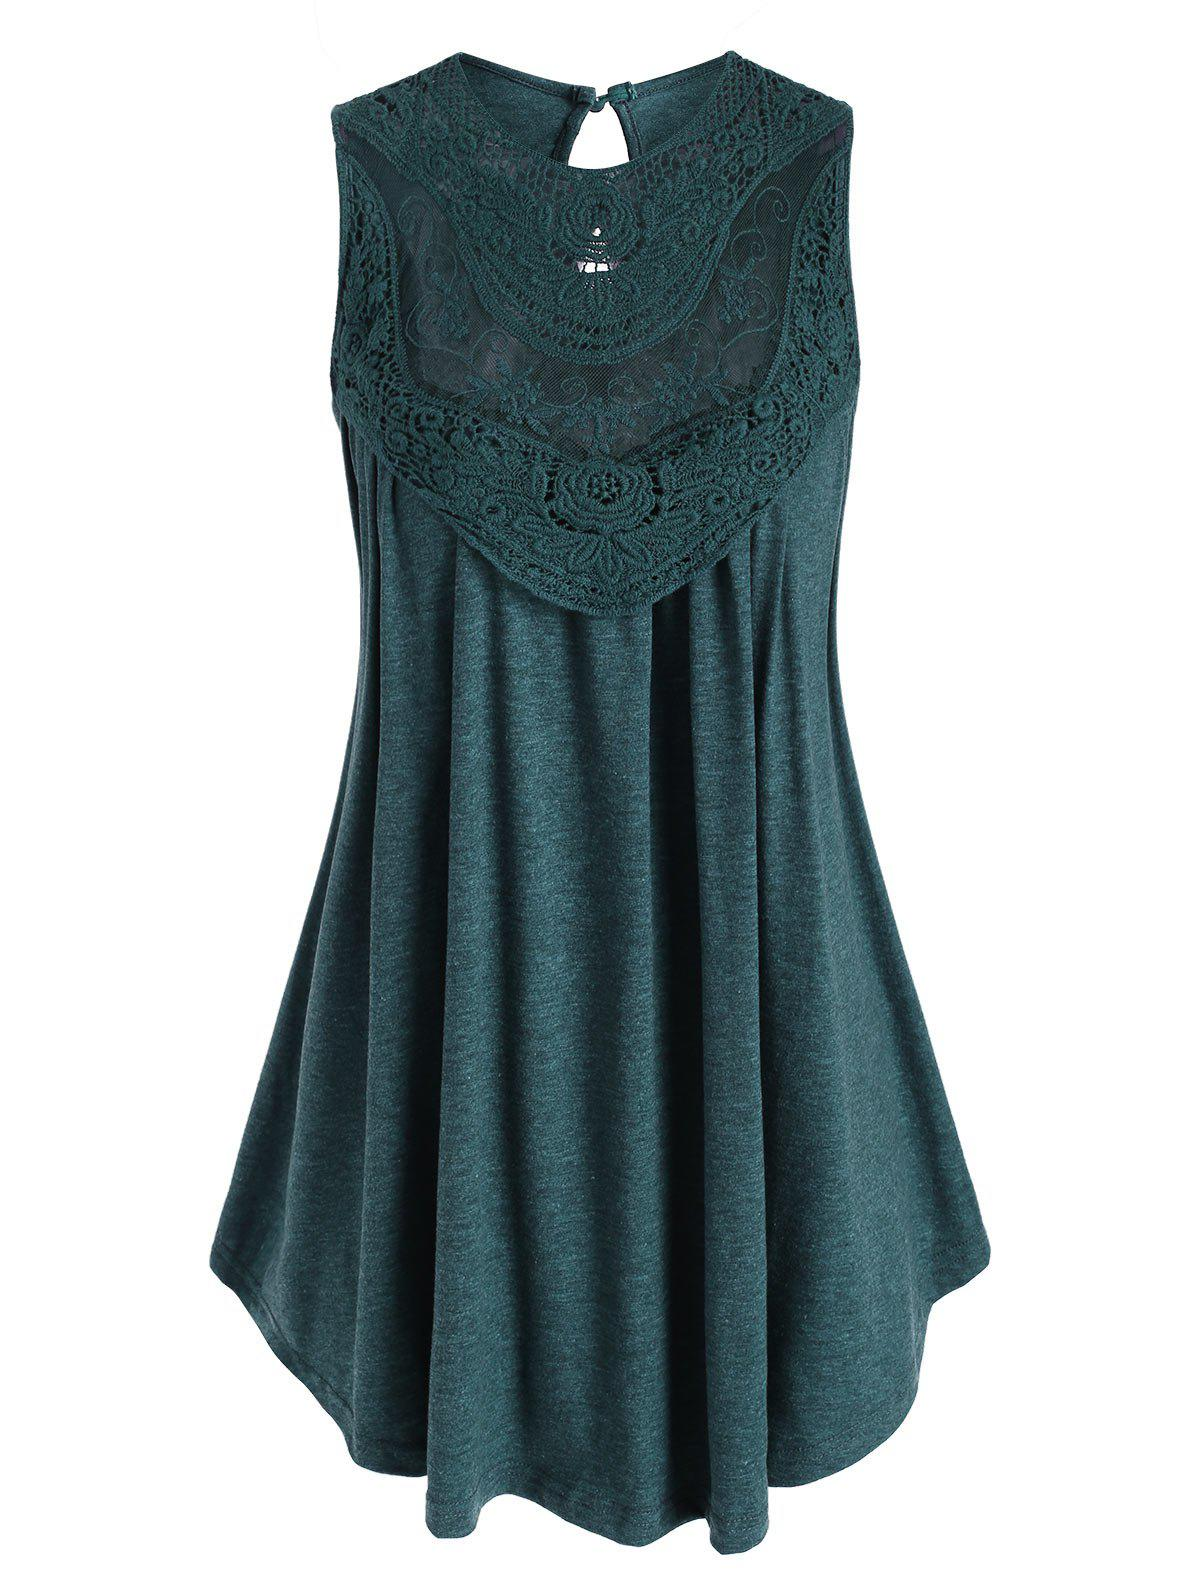 Crochet Lace Panel Heathered Keyhole Plus Size Tank Top - DEEP GREEN 2XL